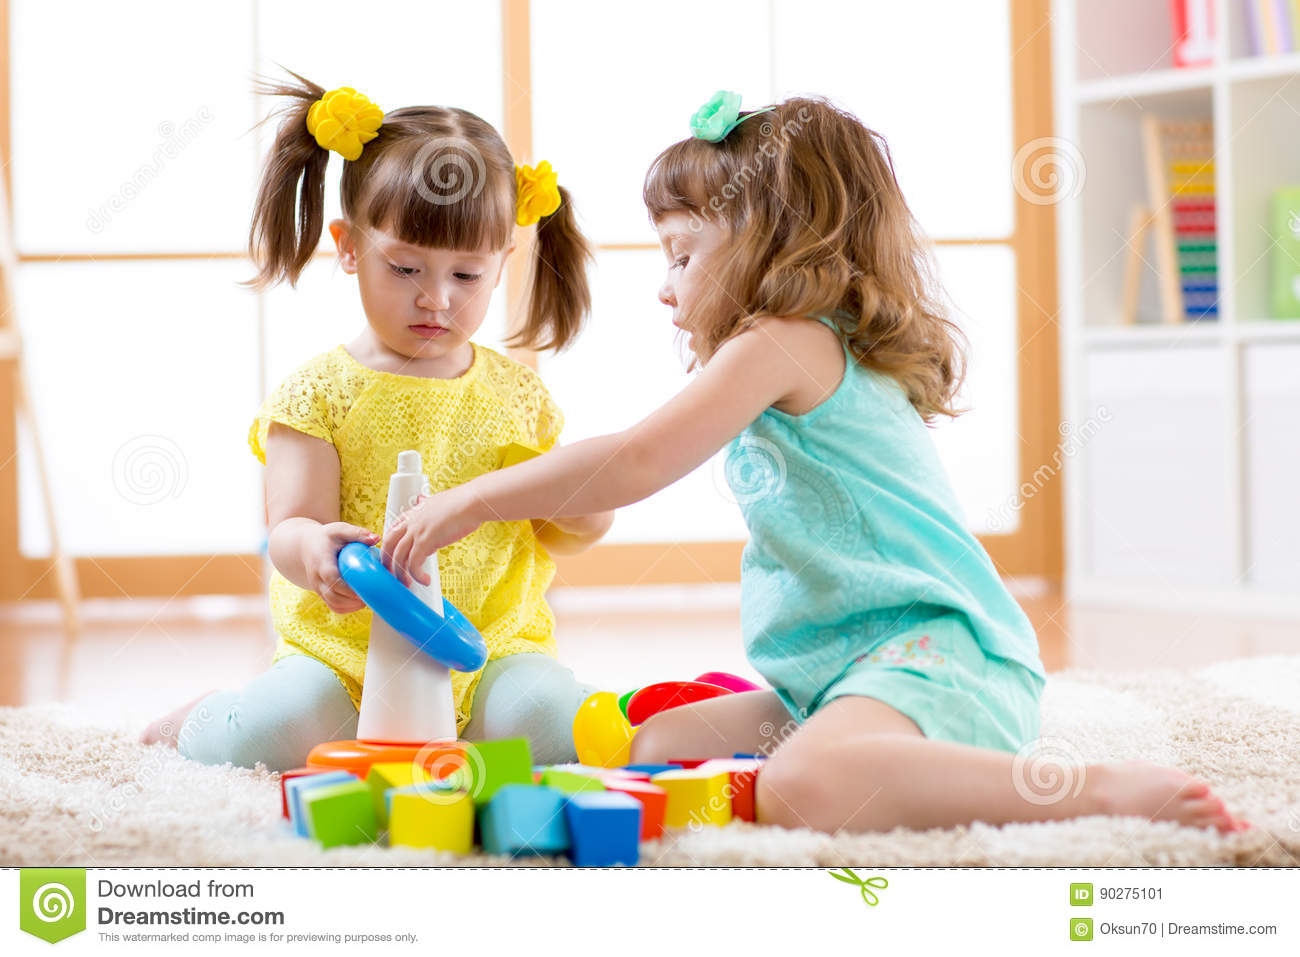 Children Playing Together Stock Photos - Royalty Free Pictures-5381